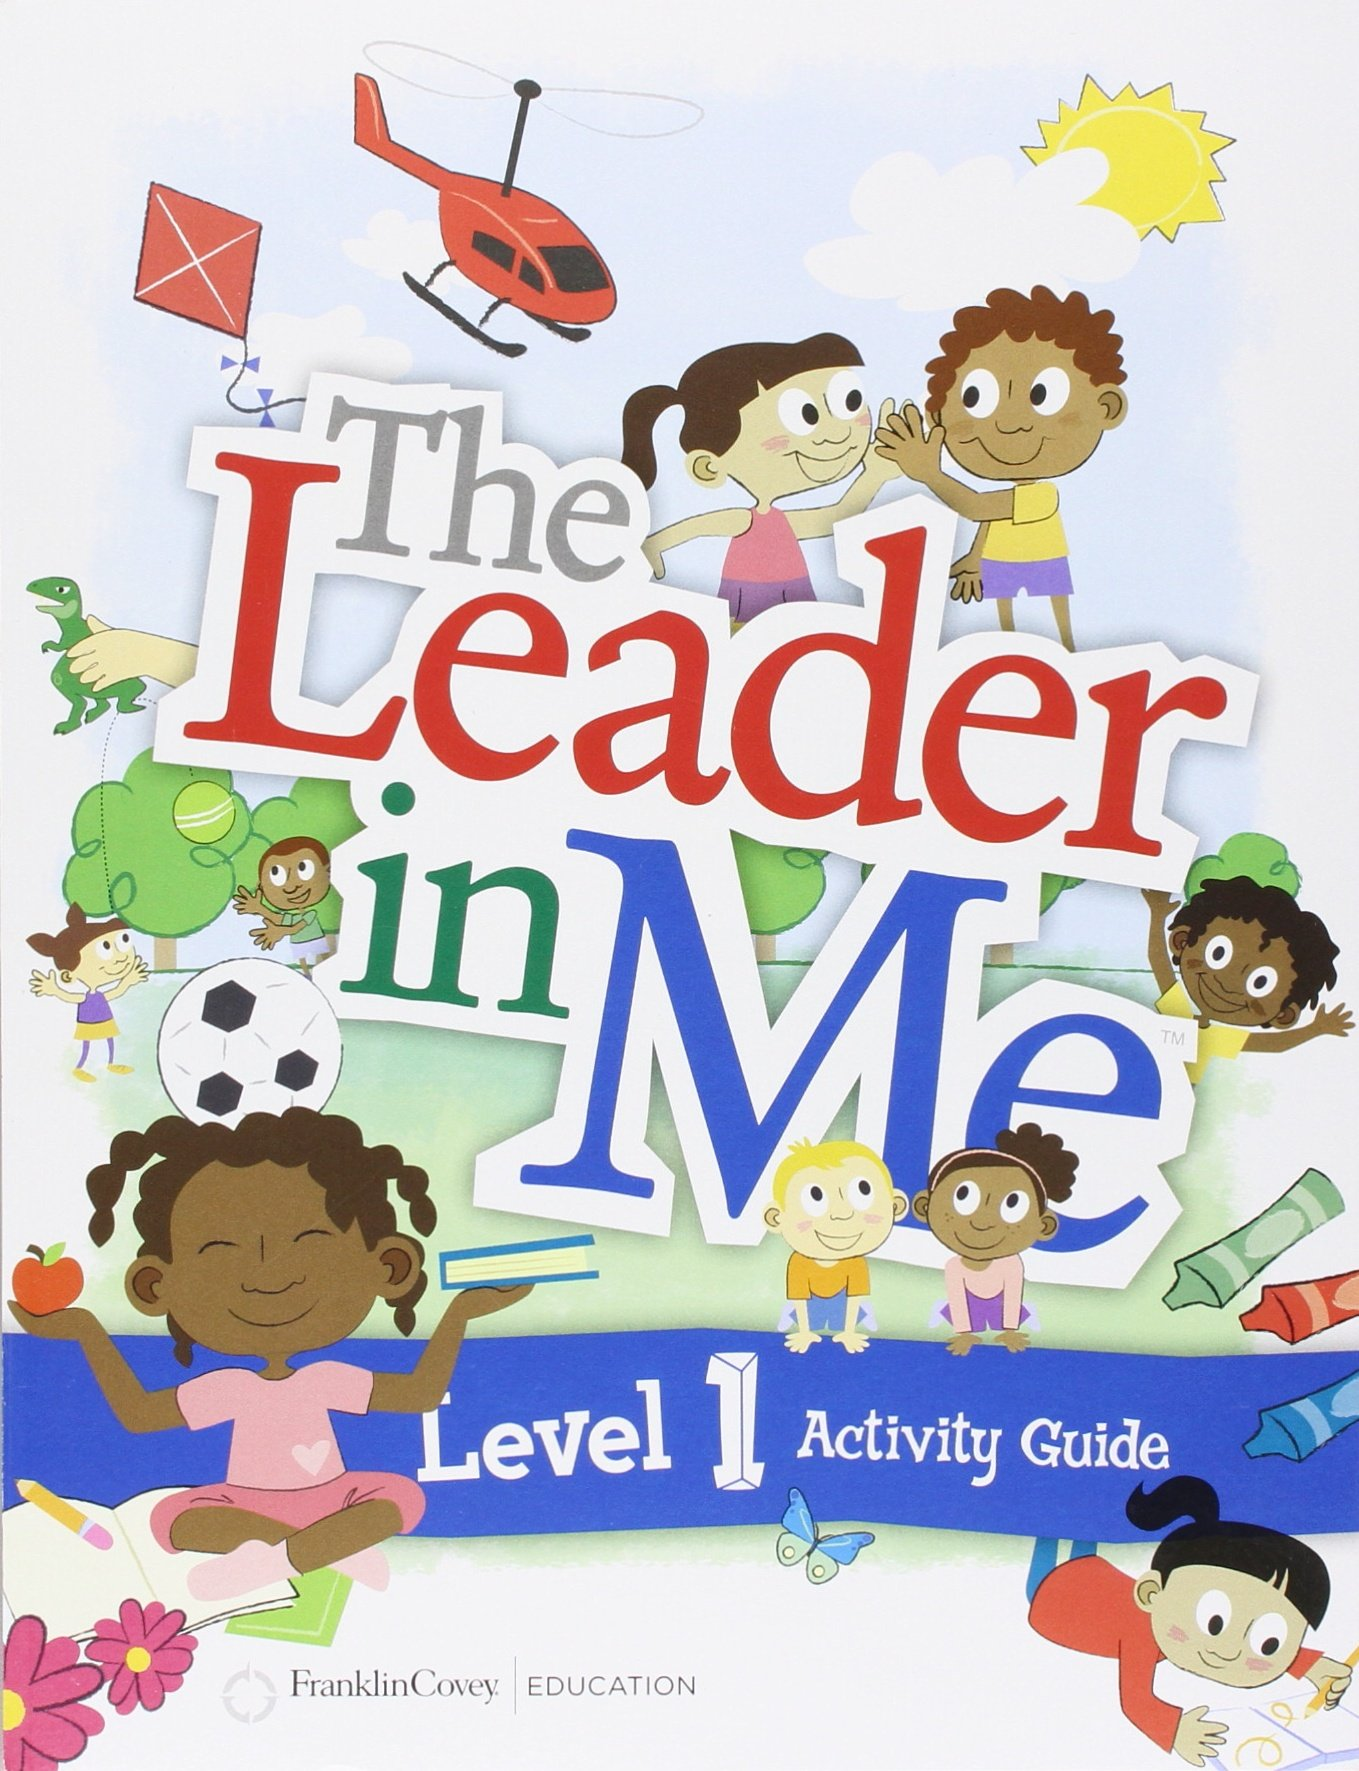 The Leader In Me Activity Guide Level 1: FranklinCovey: 9781933976884:  Amazon.com: Books